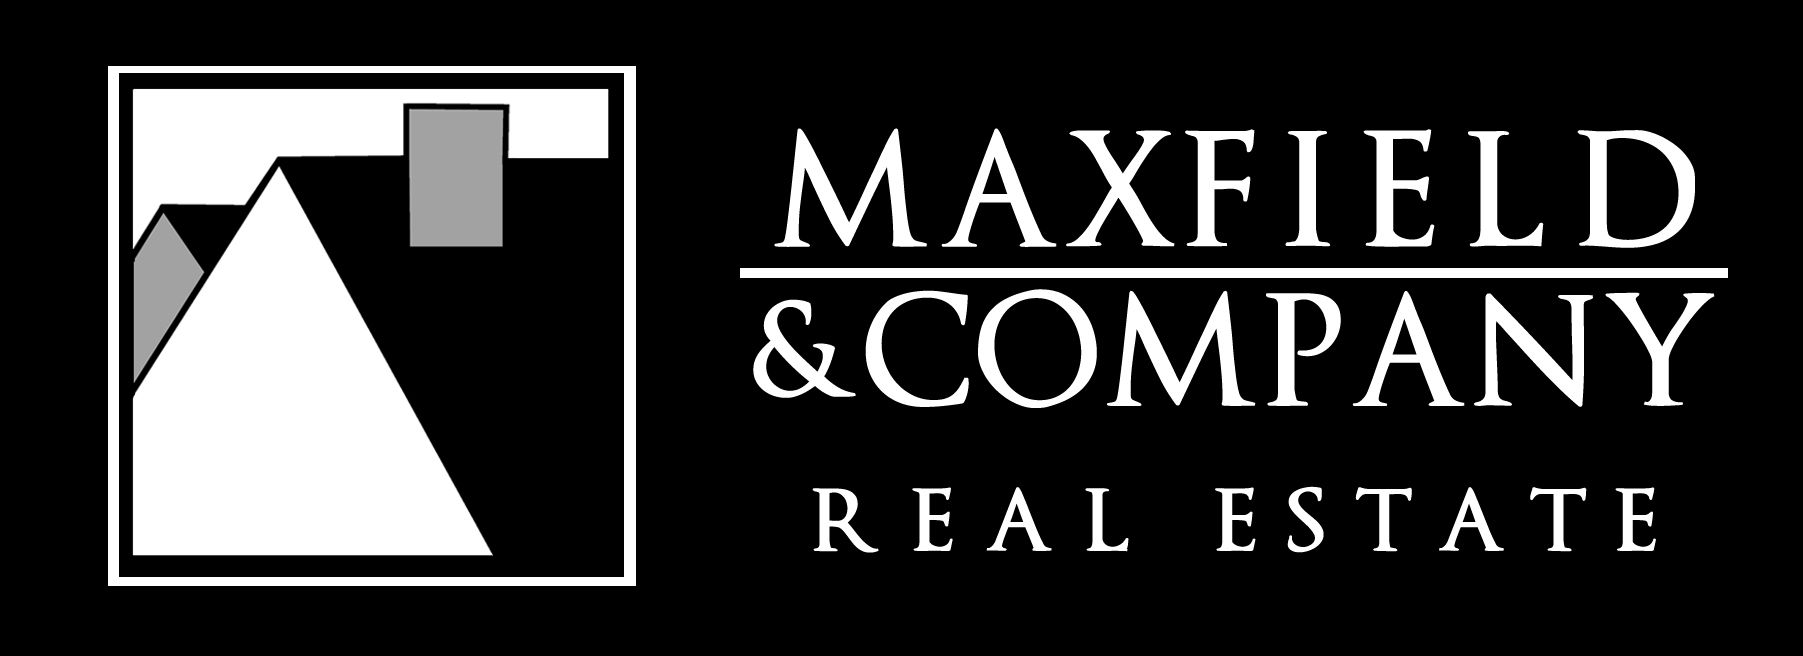 Maxfield & Company Real Estate